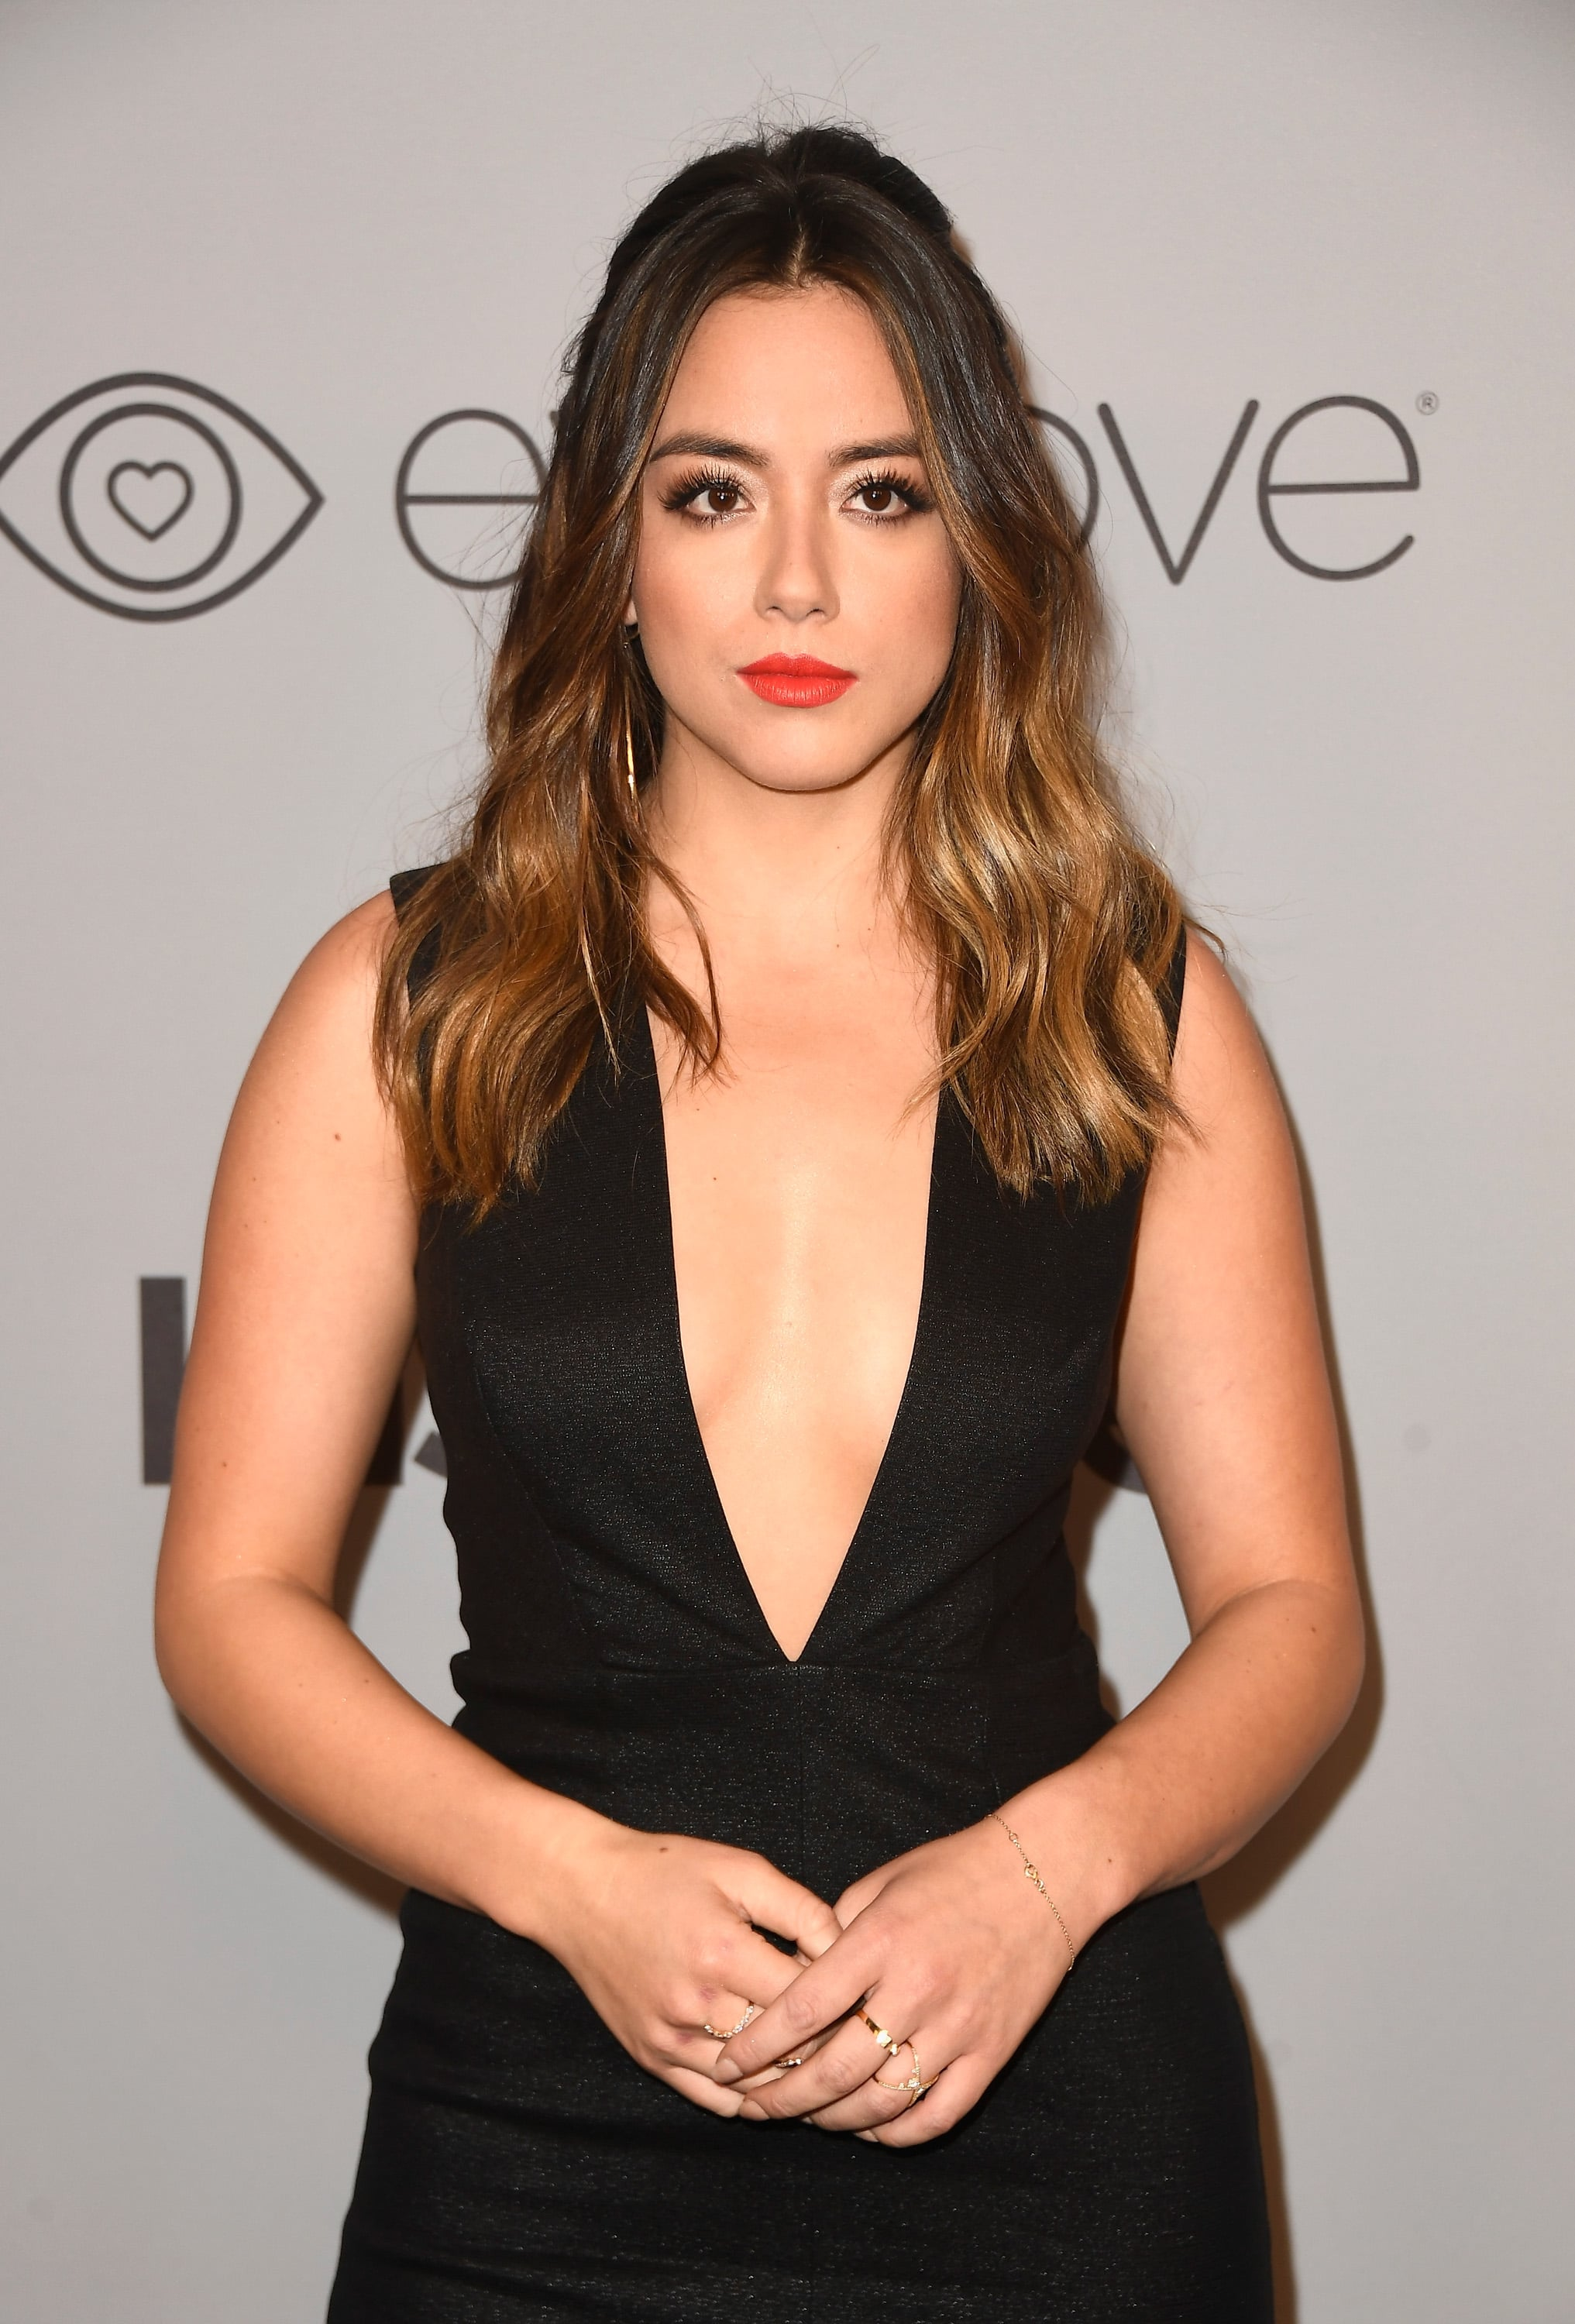 BEVERLY HILLS, CA - JANUARY 07:  Actor Chloe Bennet attends 19th Annual Post-Golden Globes Party hosted by Warner Bros. Pictures and InStyle at The Beverly Hilton Hotel on January 7, 2018 in Beverly Hills, California.  (Photo by Frazer Harrison/Getty Images)